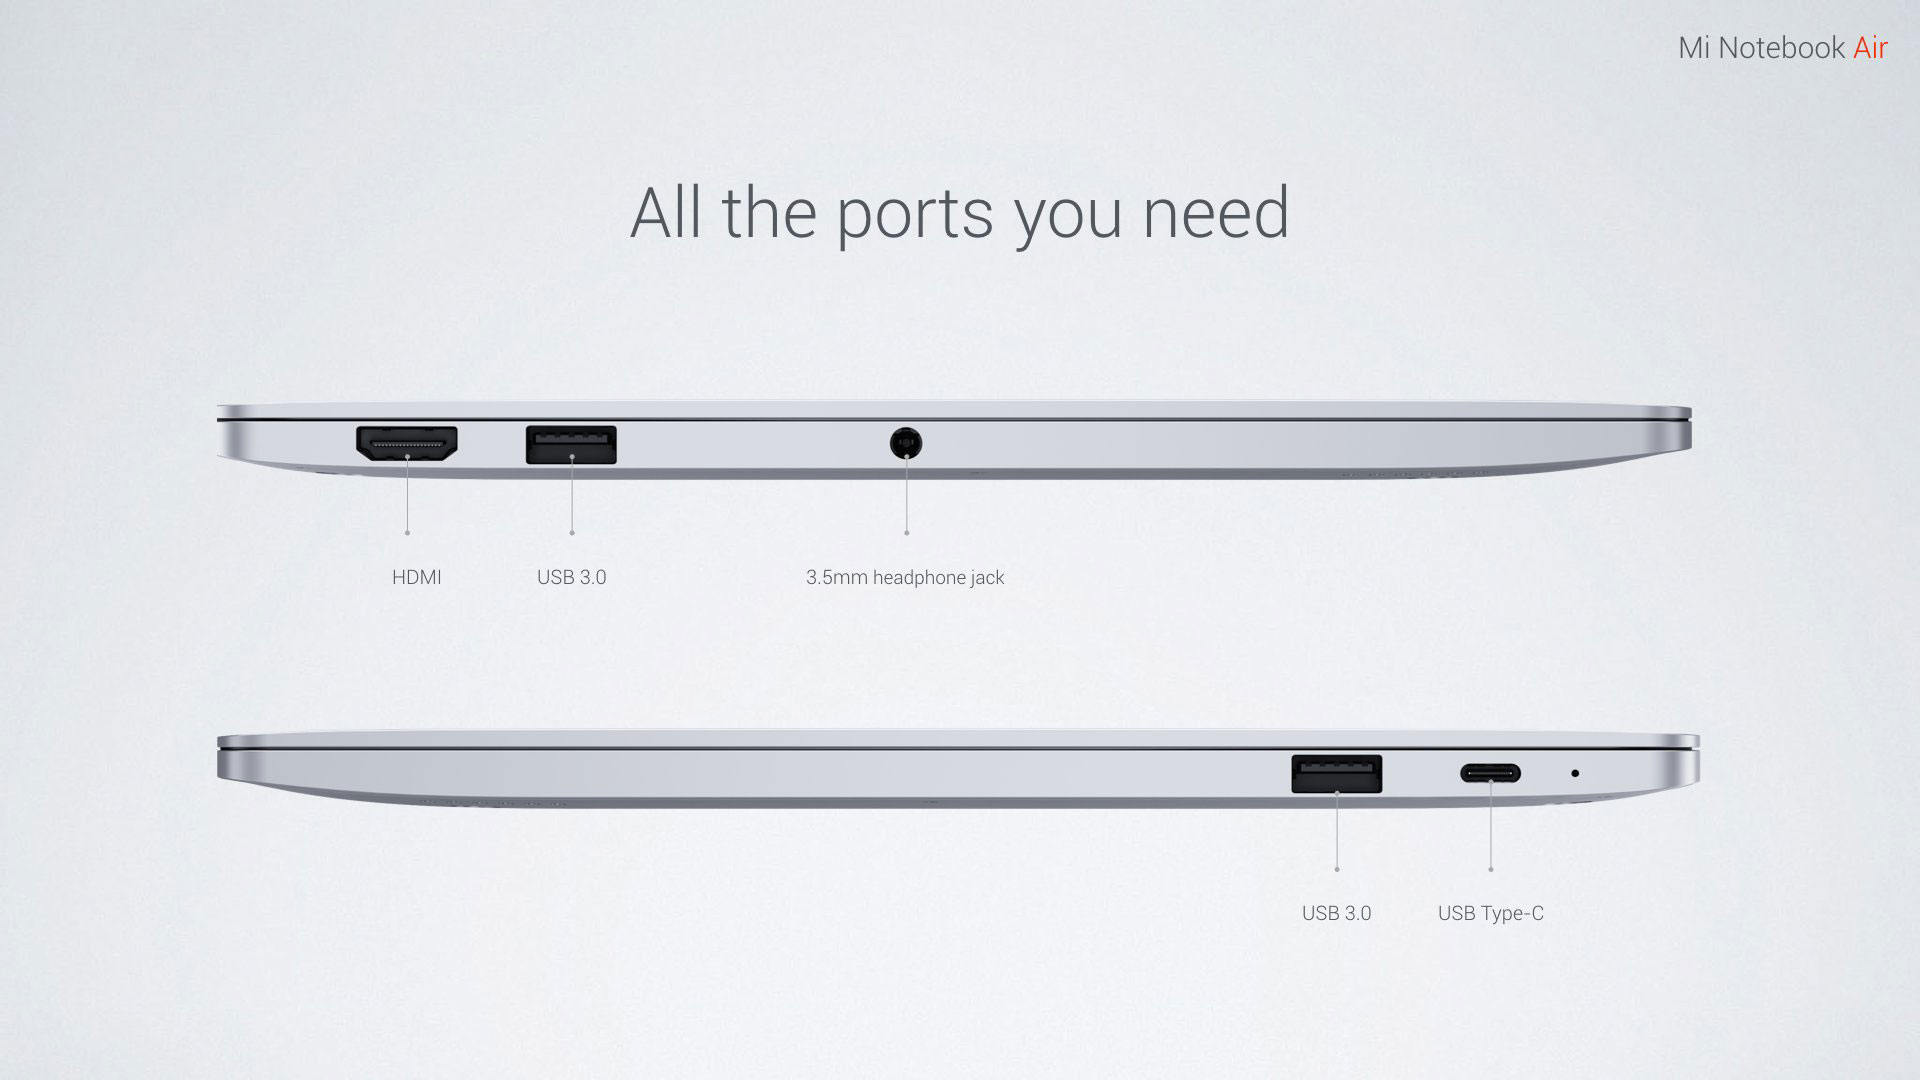 xiaomi-Mi-Notebook-Air-puertos